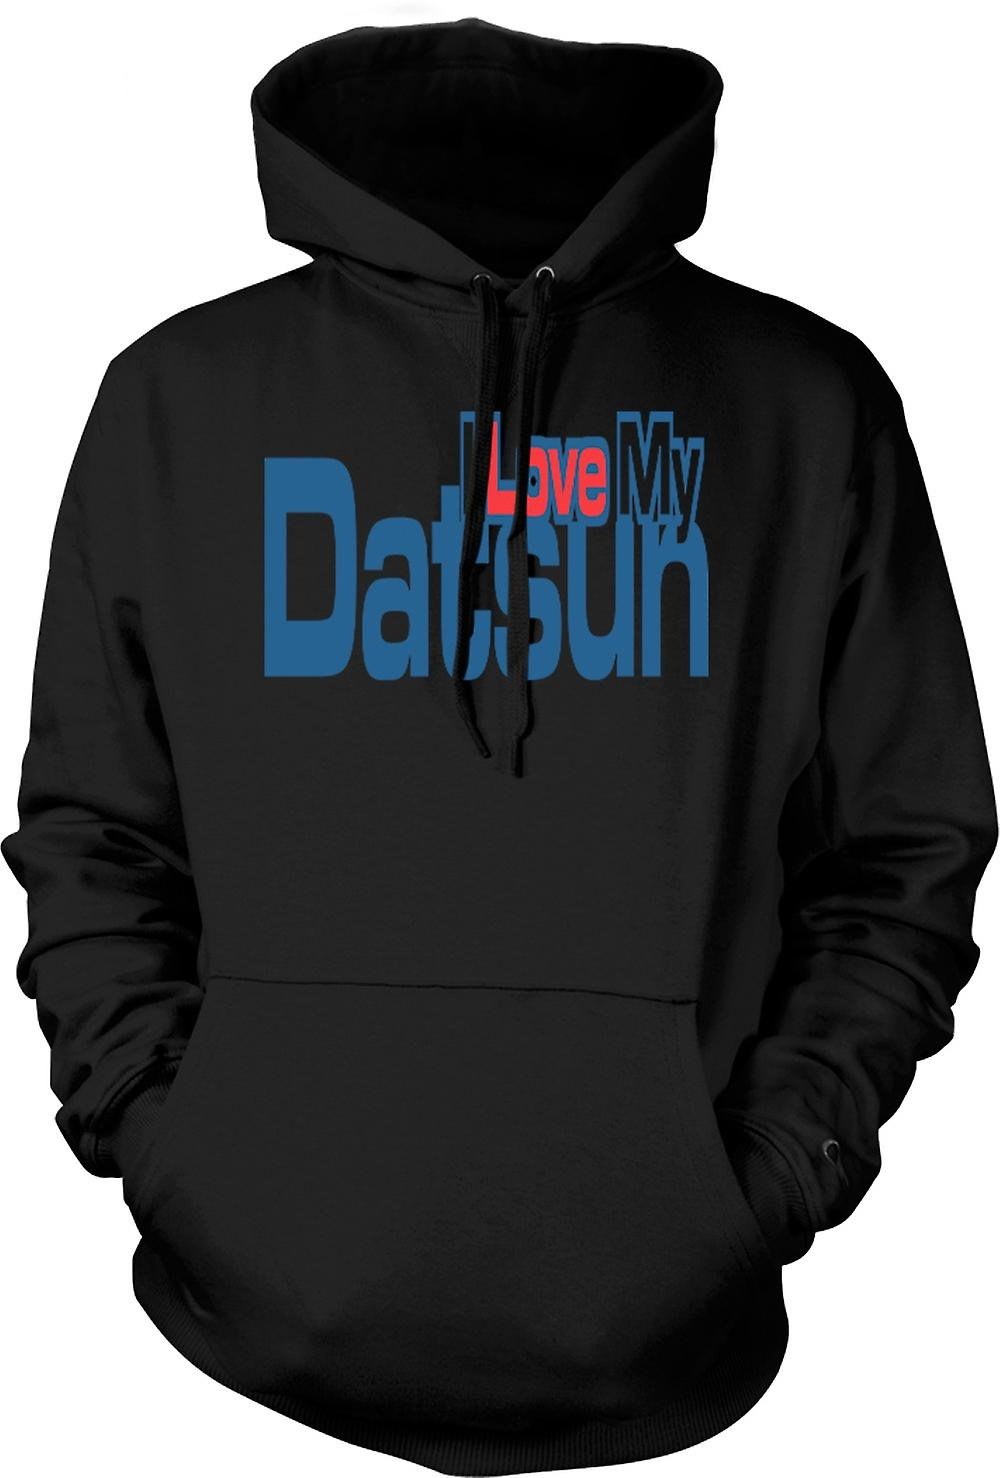 Mens Hoodie - I Love My Datsun - Car Enthusiast